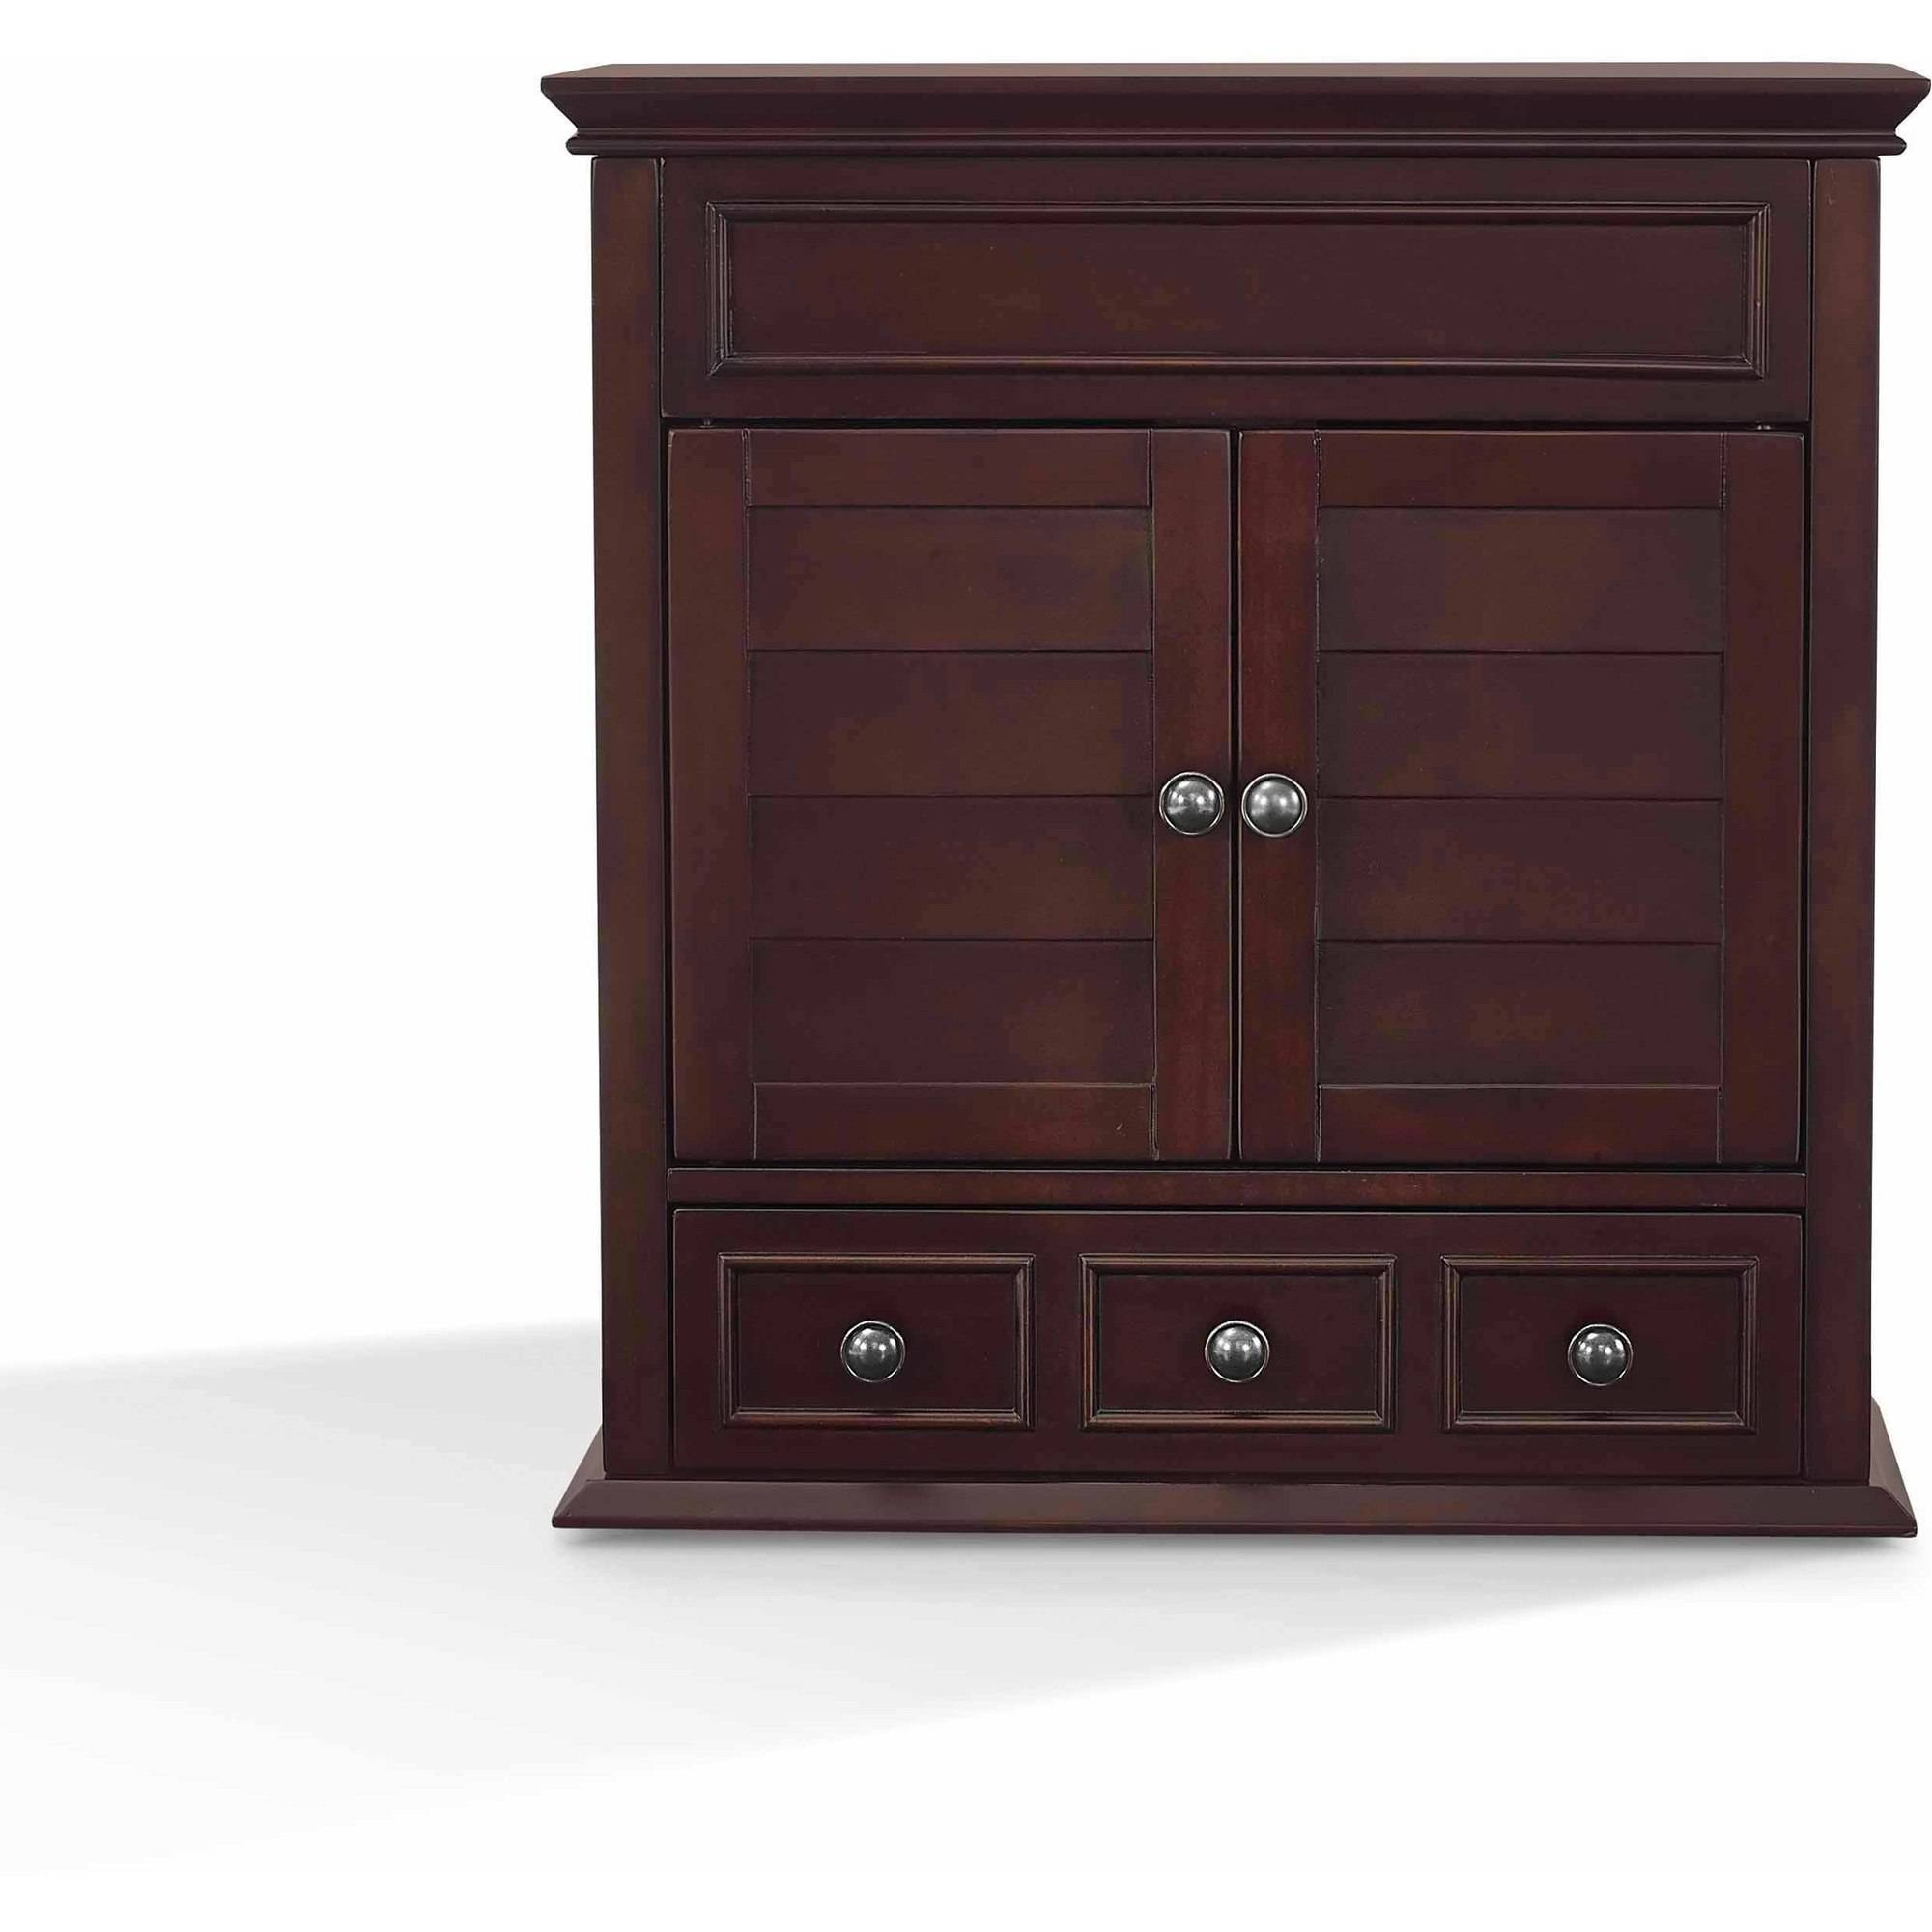 Bathroom Storage Cabinets Espresso home bathroom furniture traditional style wall solid hardwood